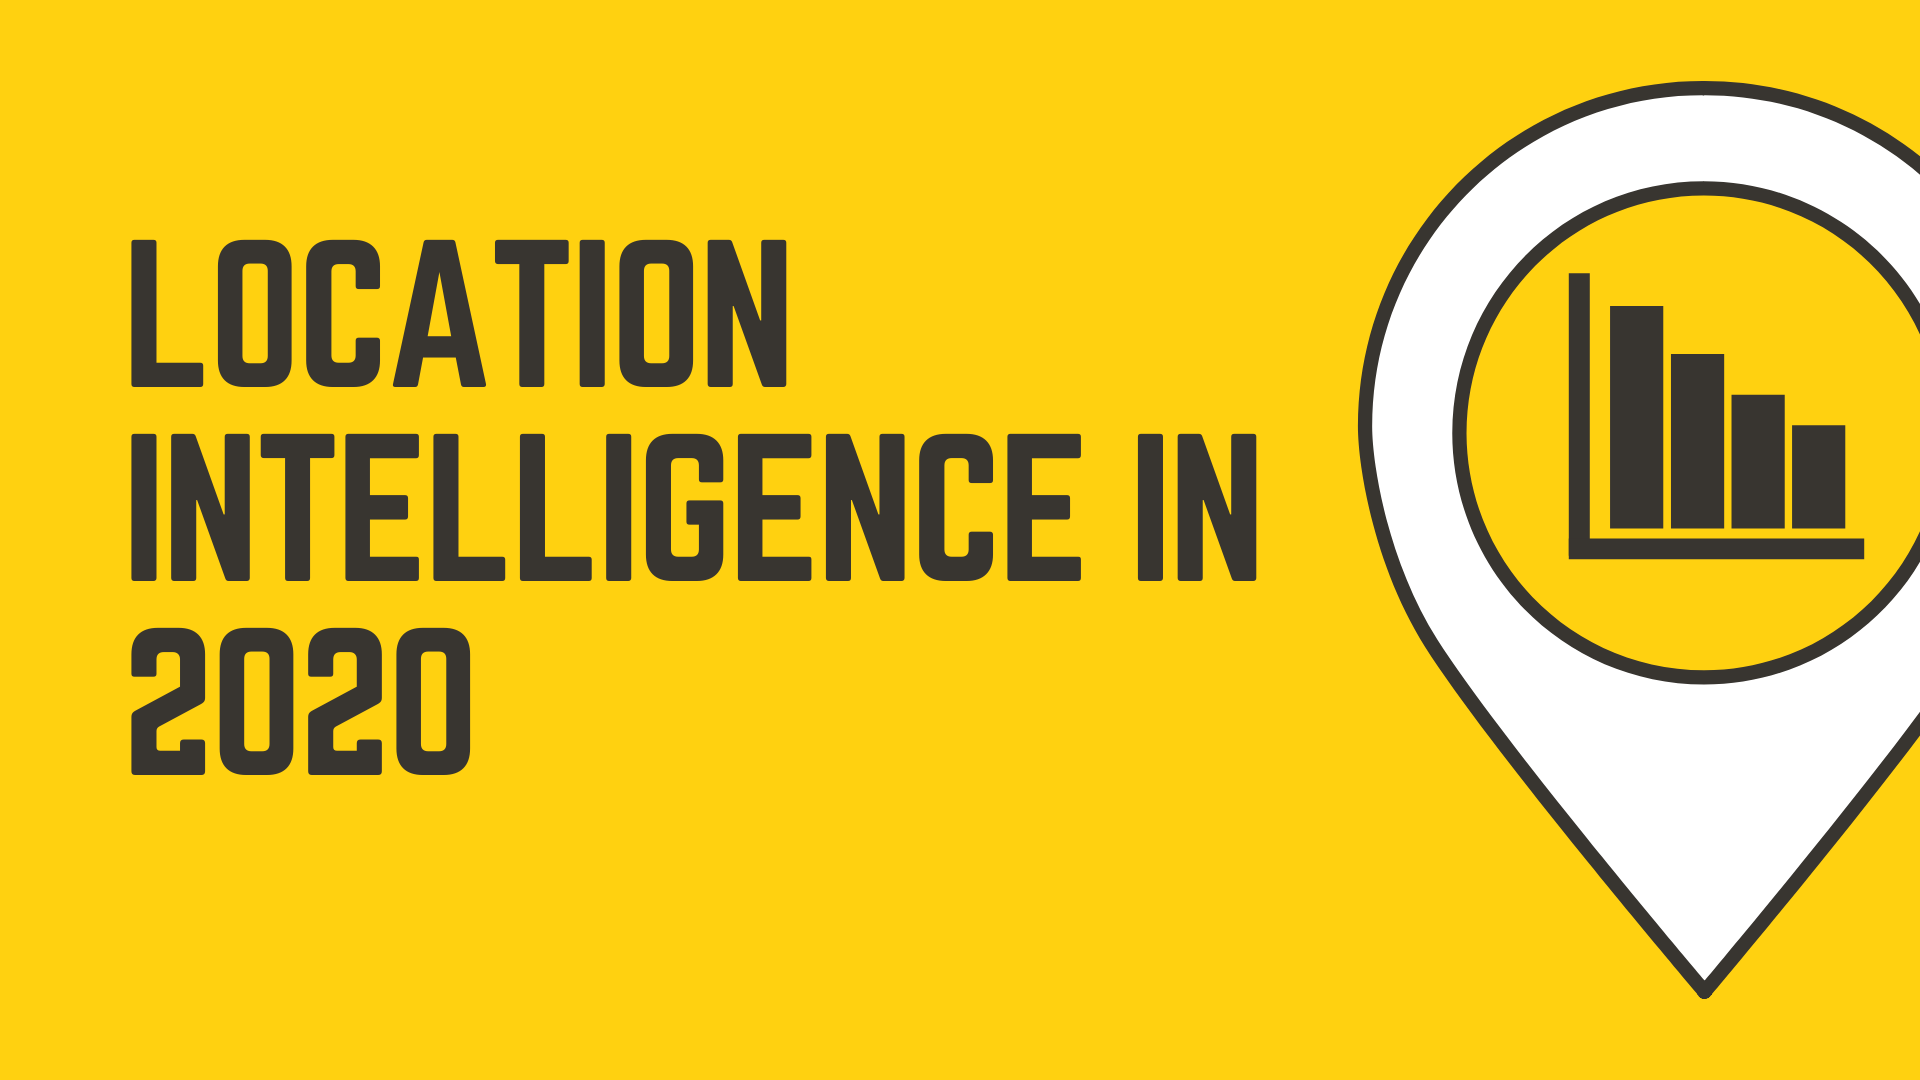 What's New for Location Intelligence in 2020?